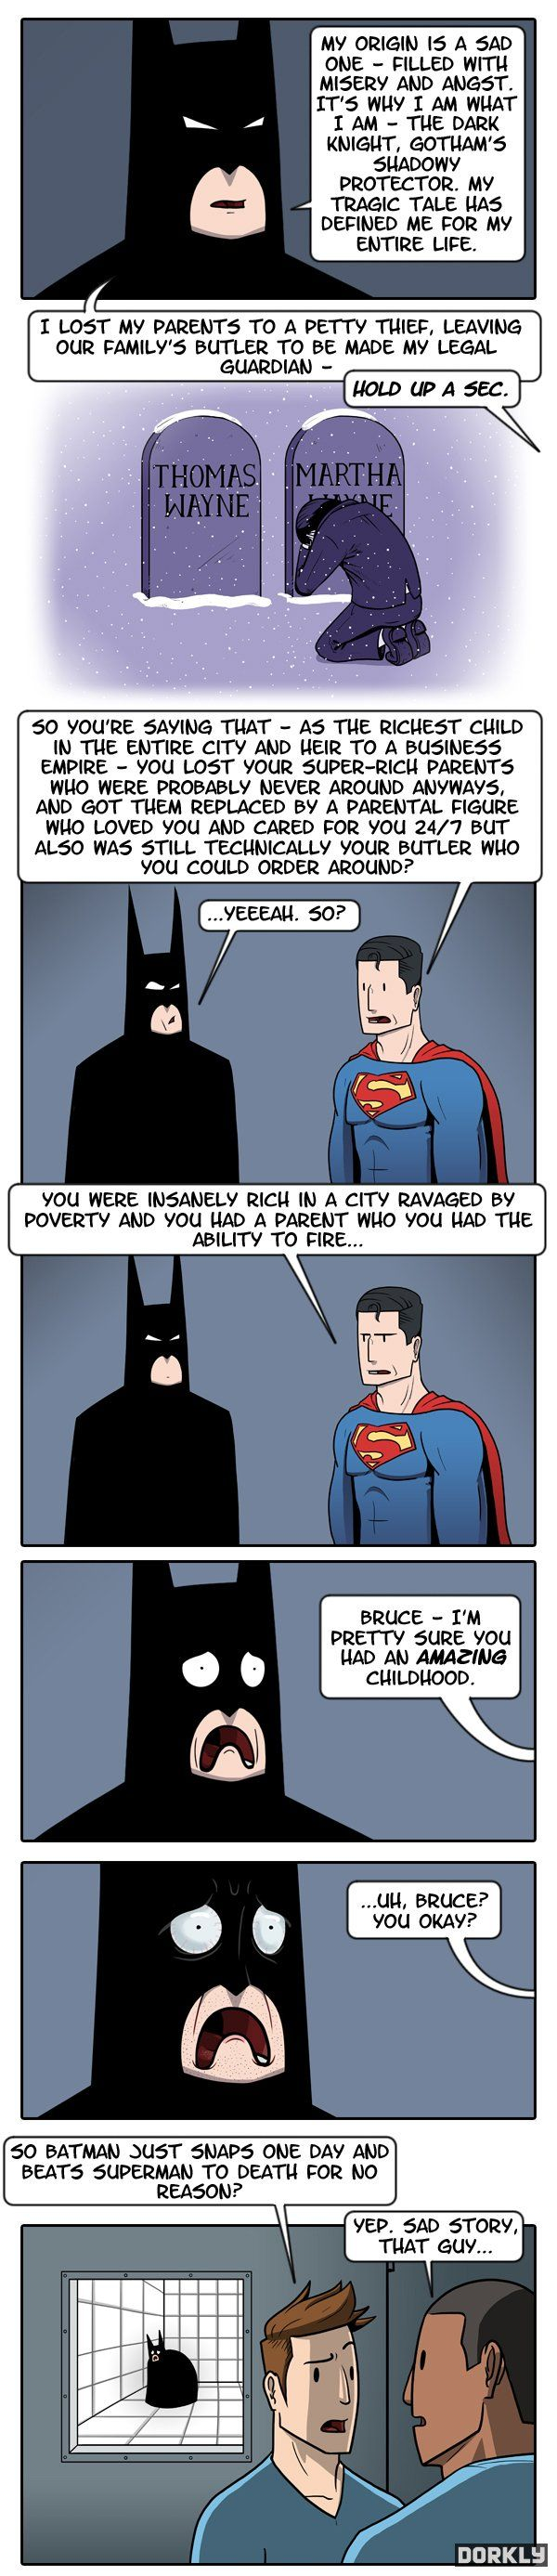 "DORKLY Comic: ""Batman's Tragic Origins"" 